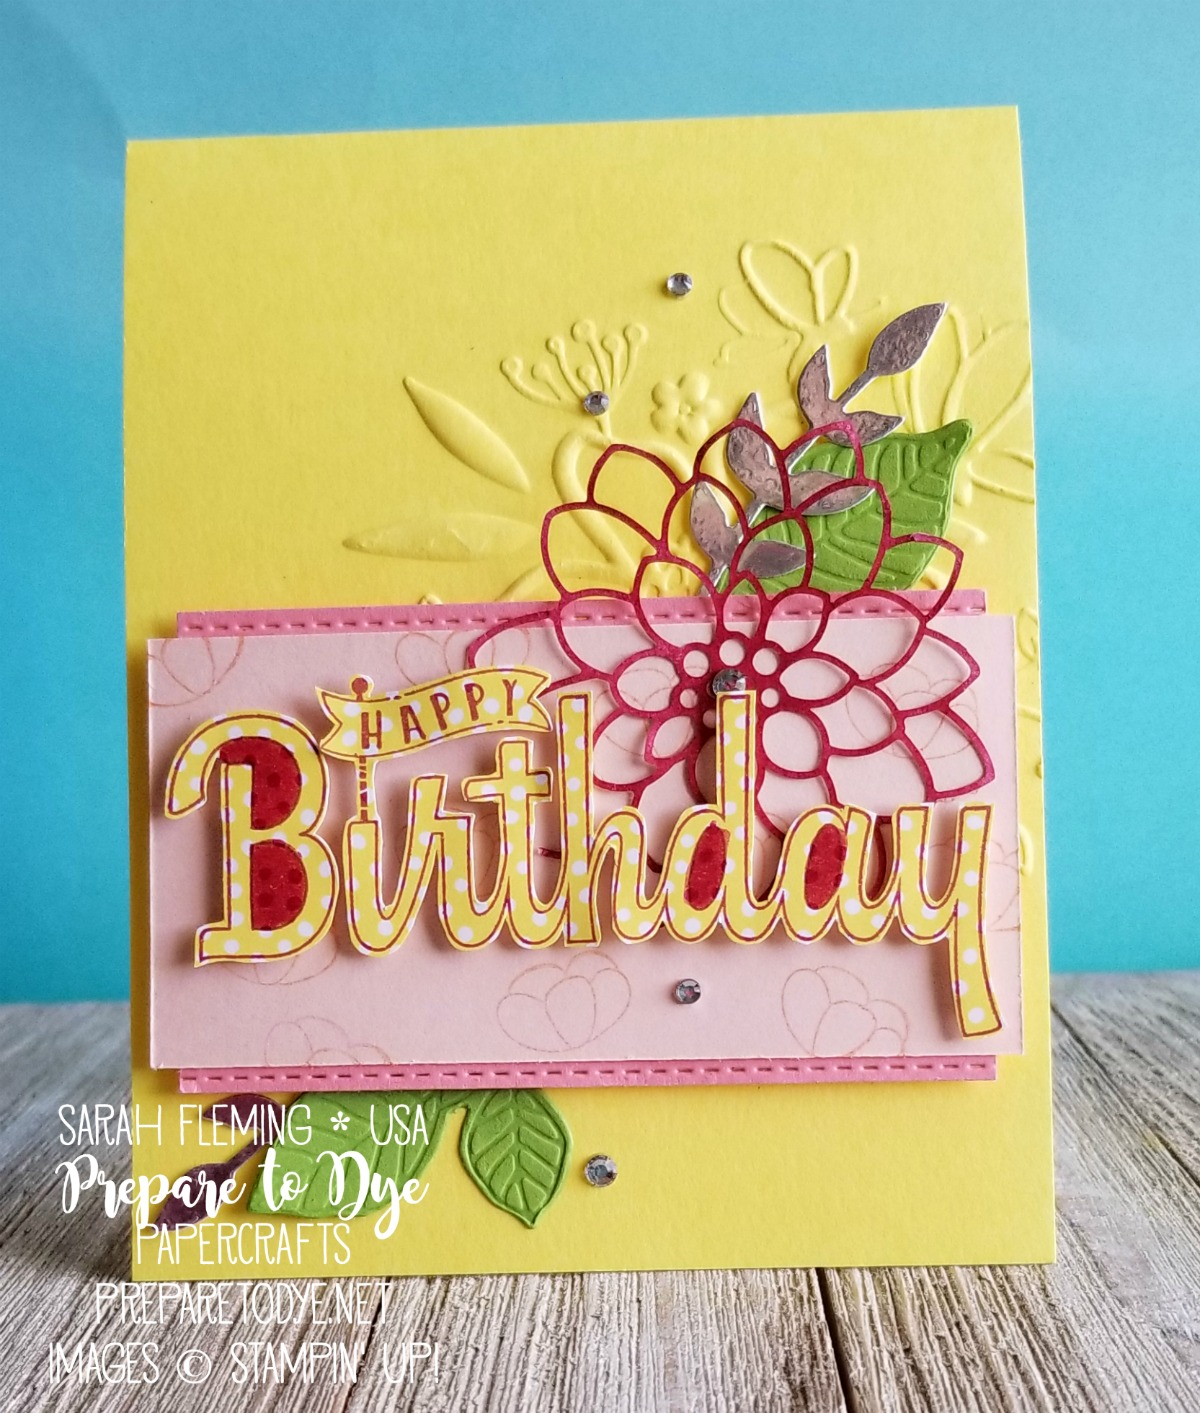 Stampin' Up! Birthday Wishes for You, Delightfully Detailed paper, Lovely Floral dynamic embossing folder, Nature's Roots framelits - Sarah Fleming - Prepare to Dye Papercrafts - Stamp, Ink, Paper challenge